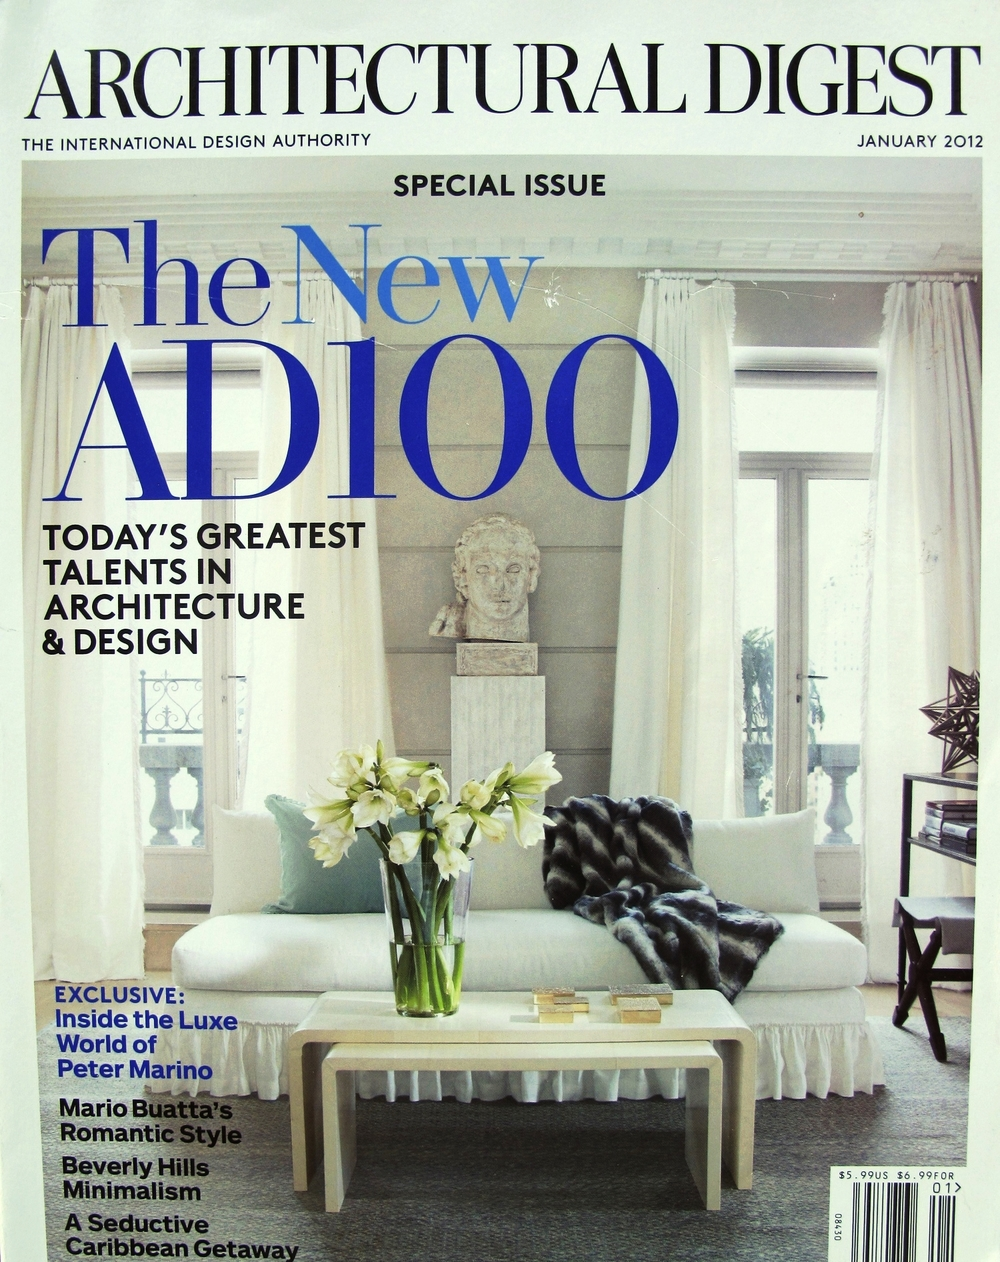 AD100 cover.JPG